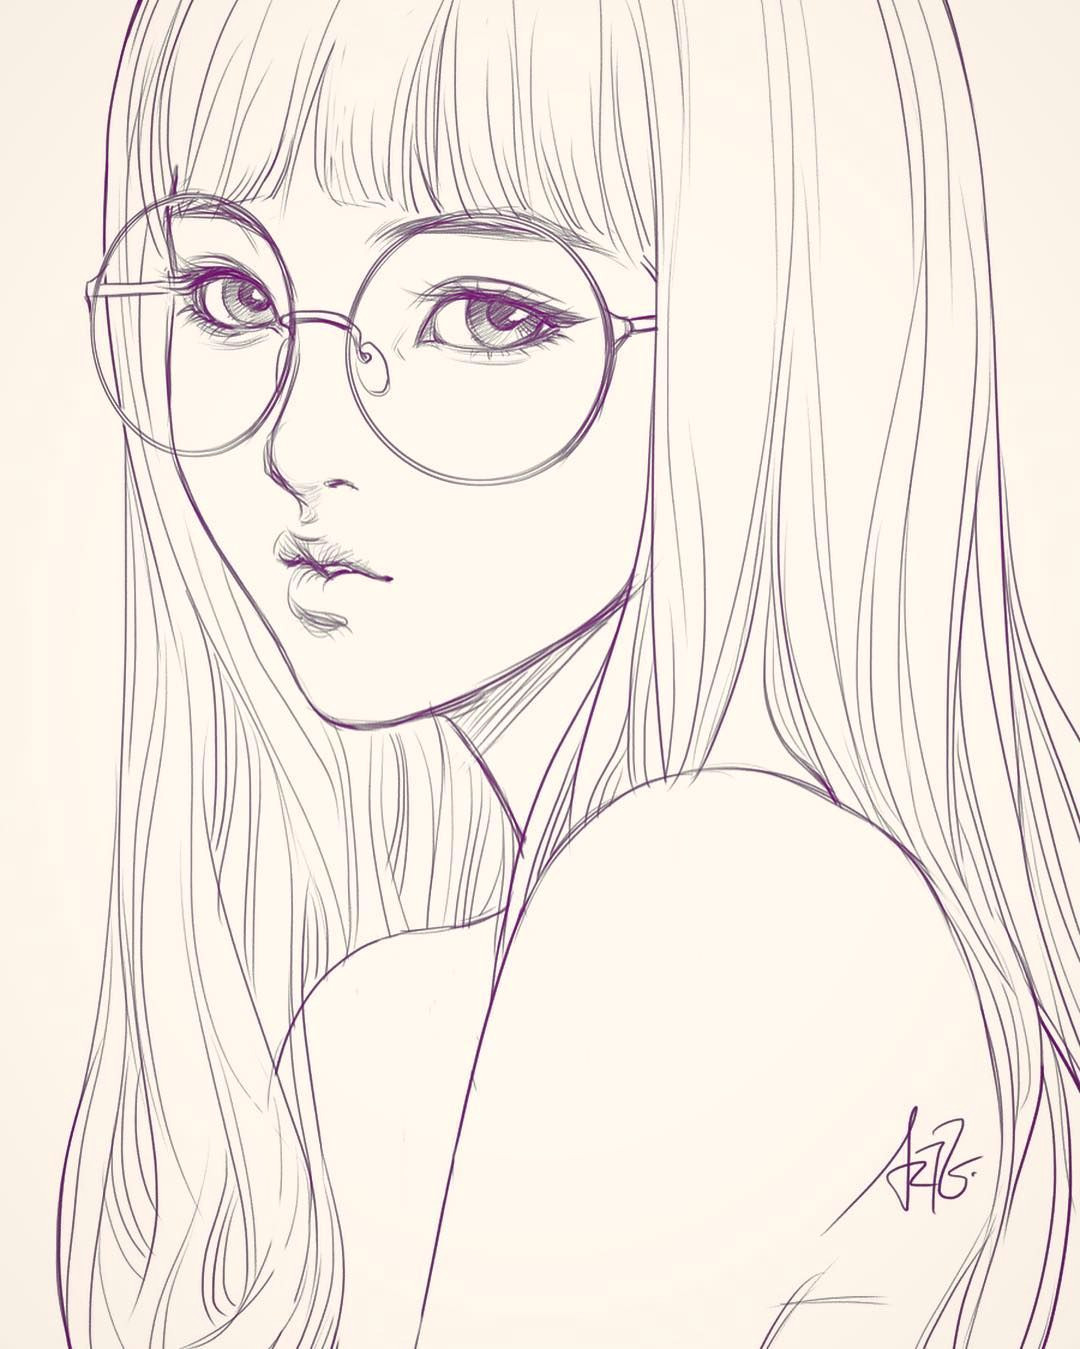 last sketch of girl with glasses having bad backache it hurts